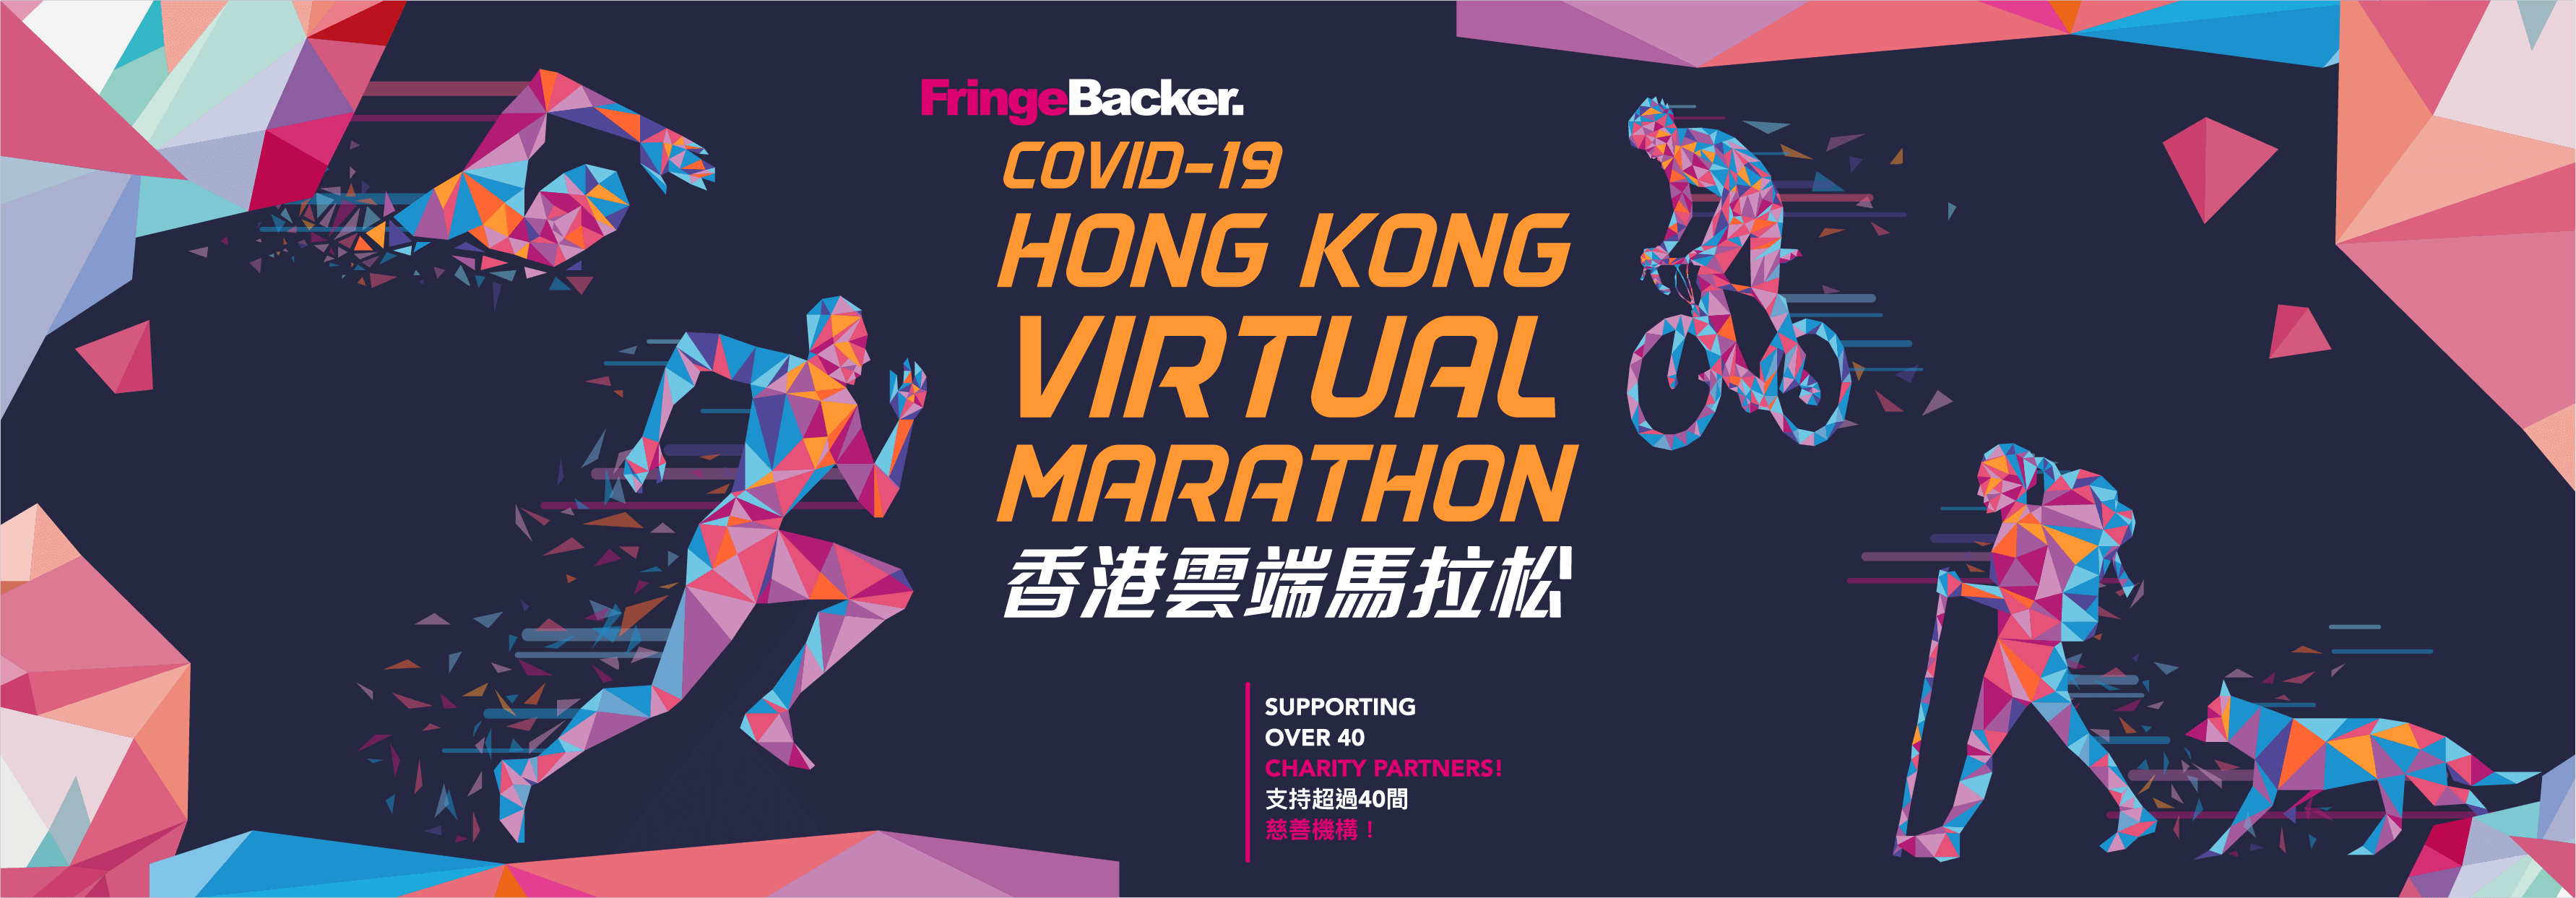 hong kong virtual run